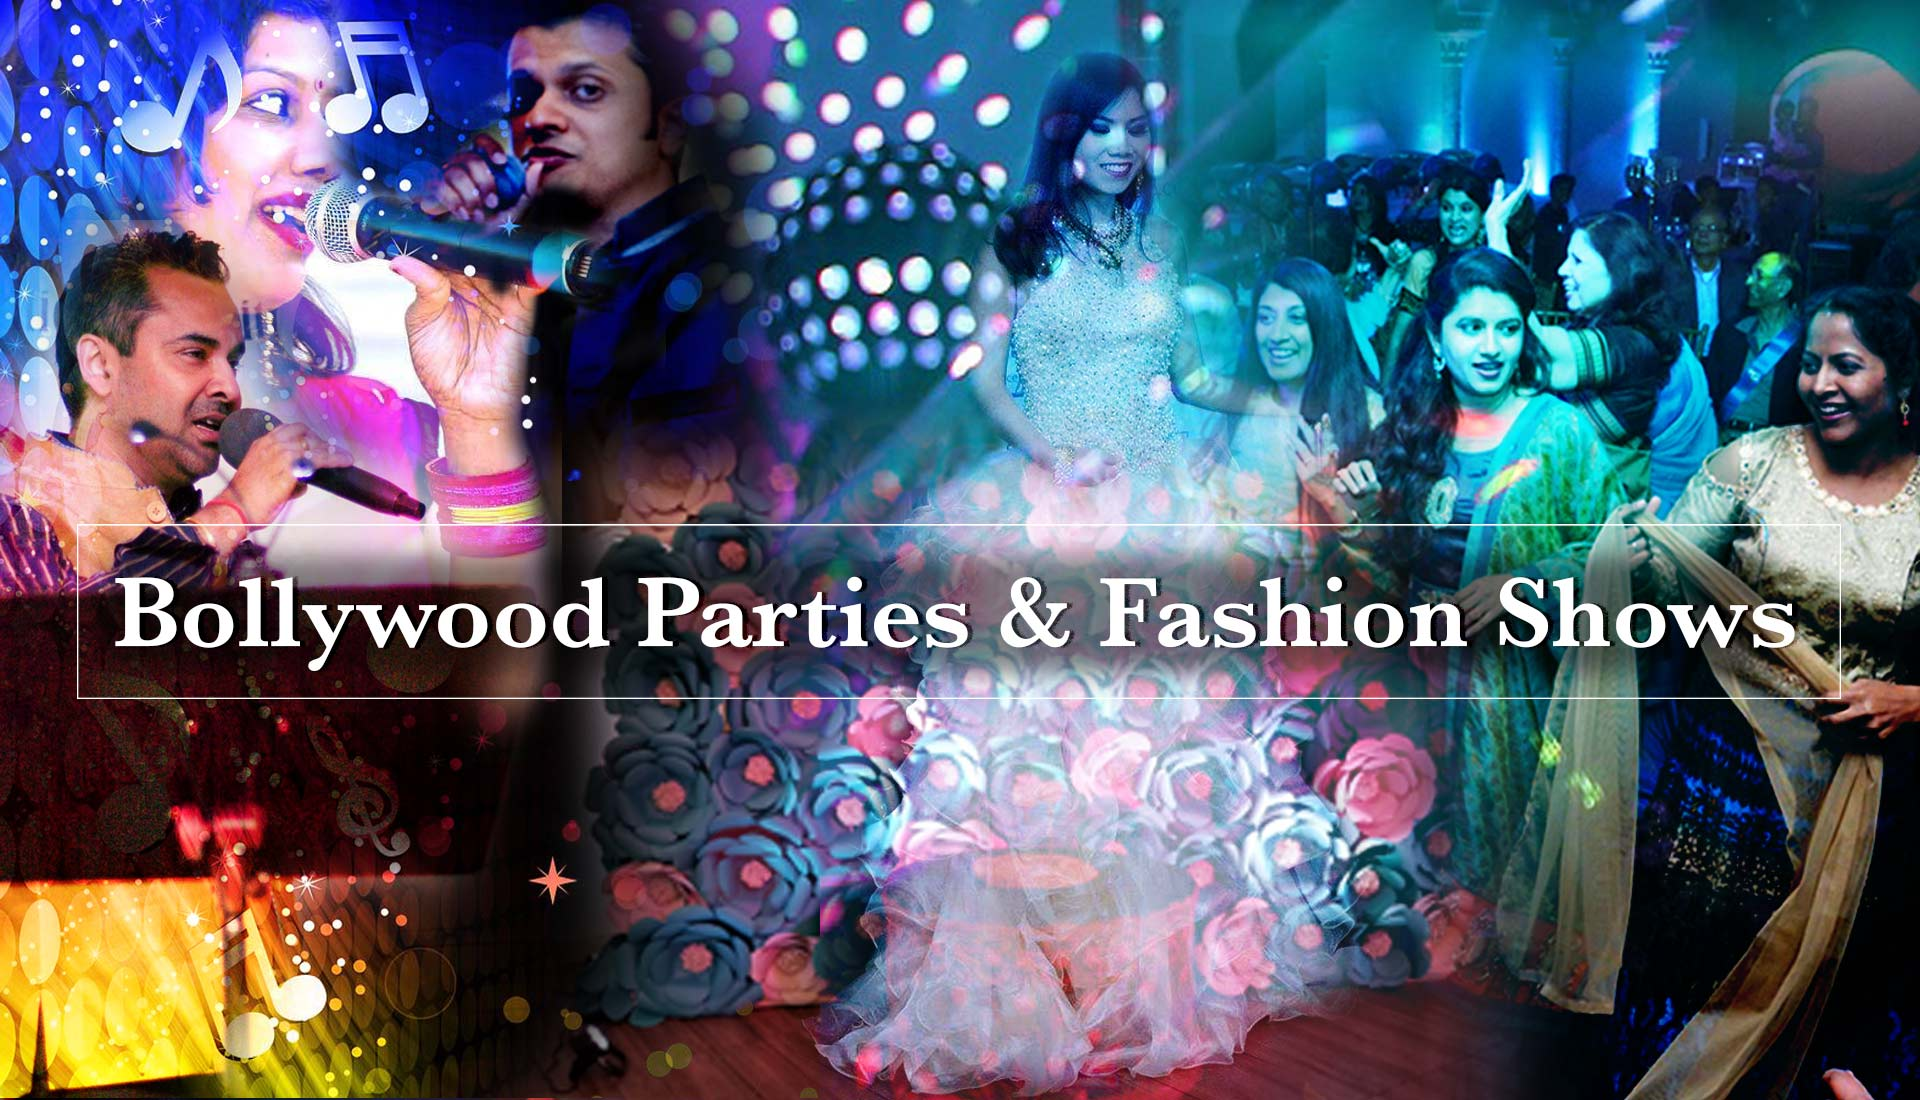 Our Indian Culture organizes Best Bollywood Parties and Fashion Shows in Los Angeles, Orange County, San Diego, Orange County, California